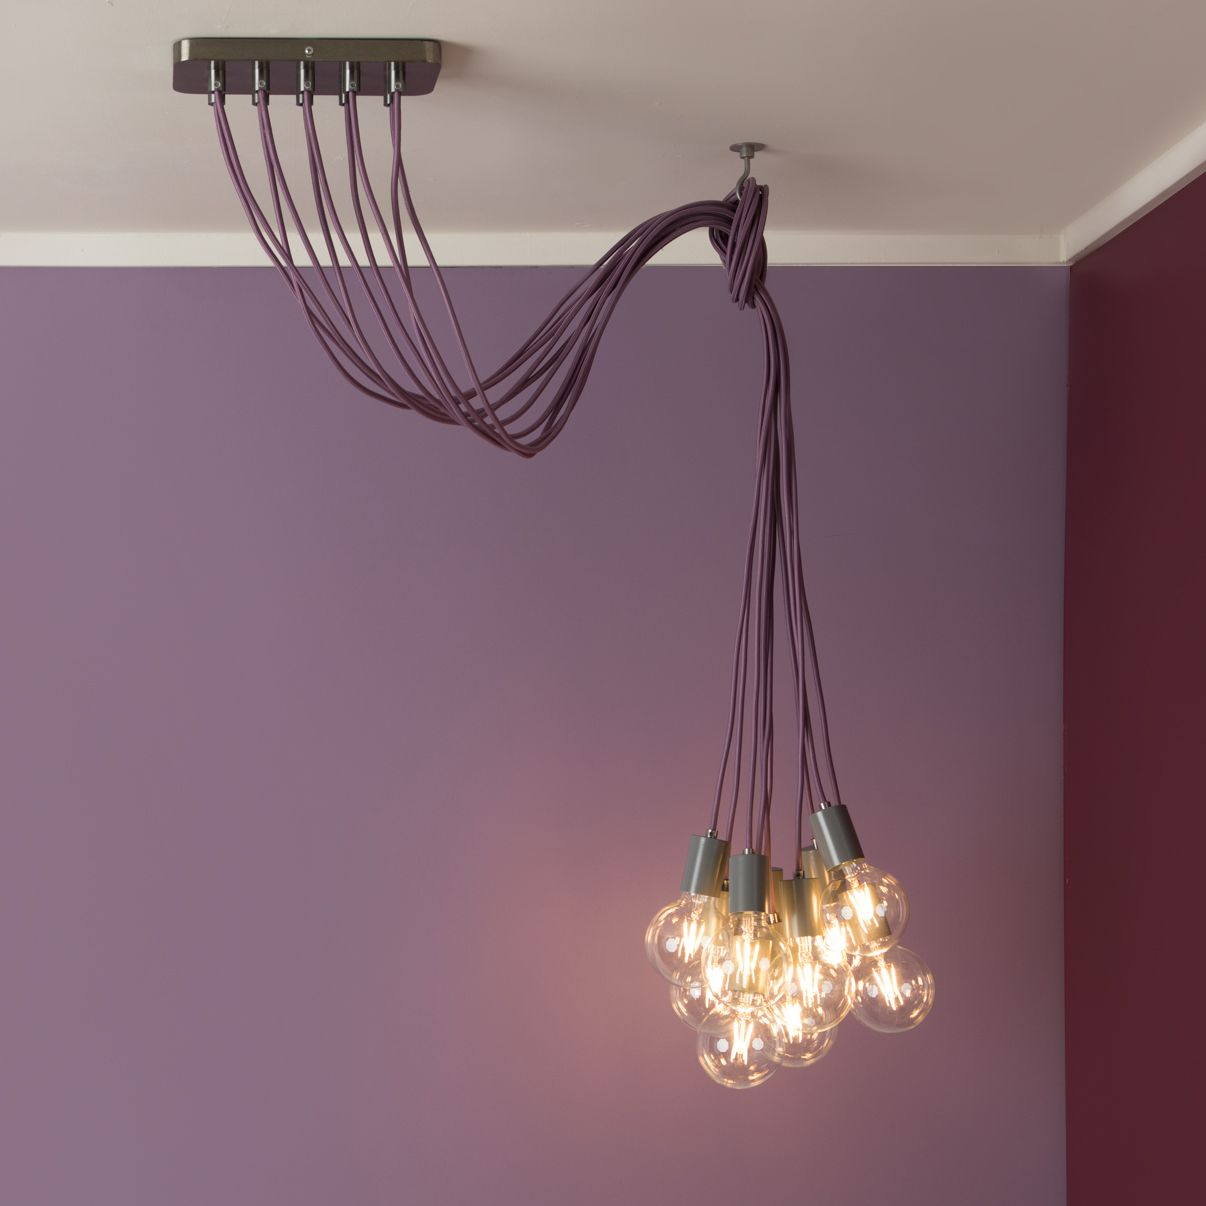 He Color Cord Company Conversion Kit 10 Port Ceiling Canopy Is Compatible With Any Of Our Fabric Wire Or Pen Pendant Light Cord Ceiling Canopy Cool Lighting